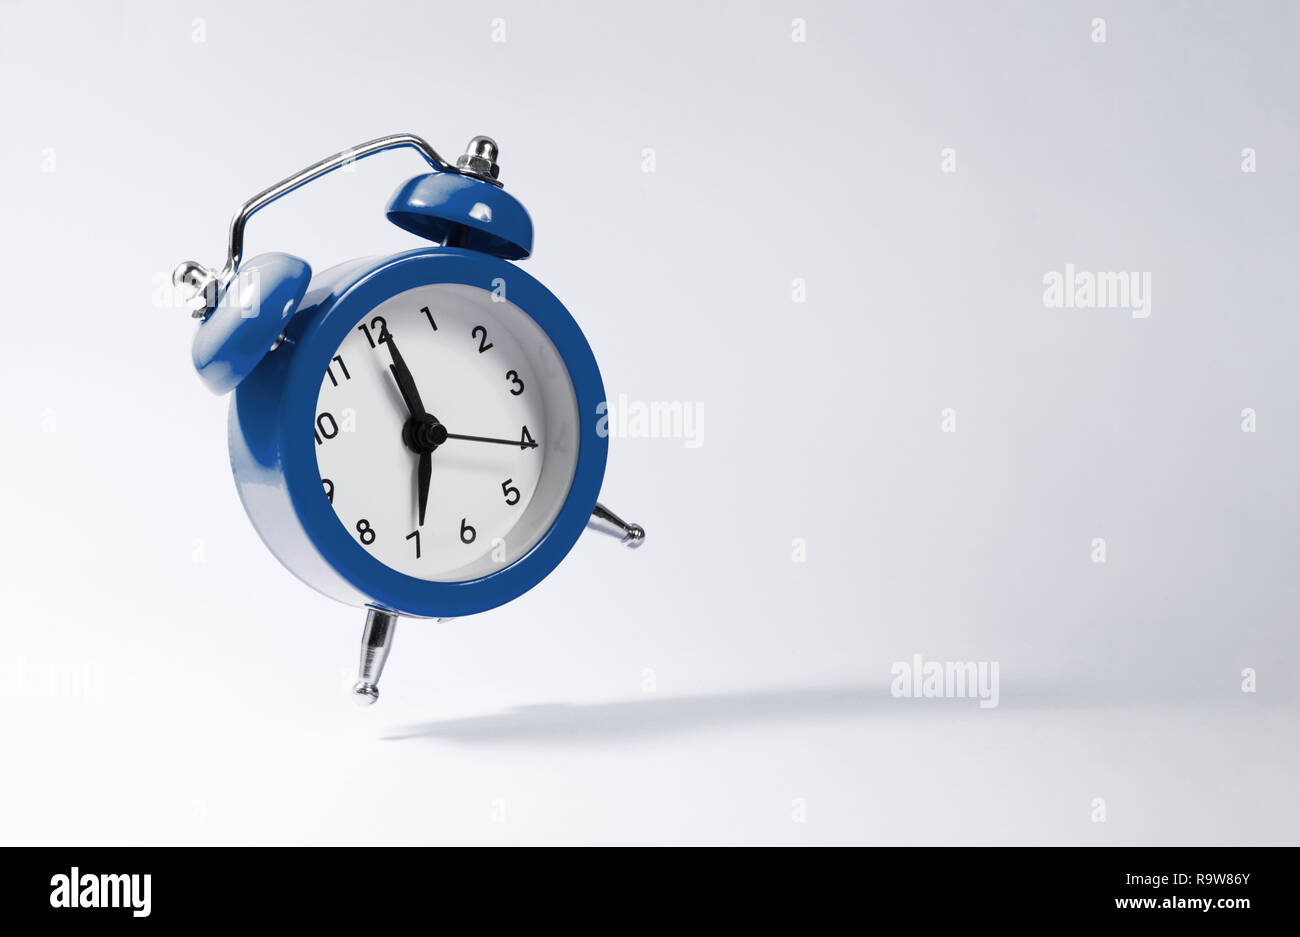 The dark blue alarm clock bounces against the background. - Stock Image